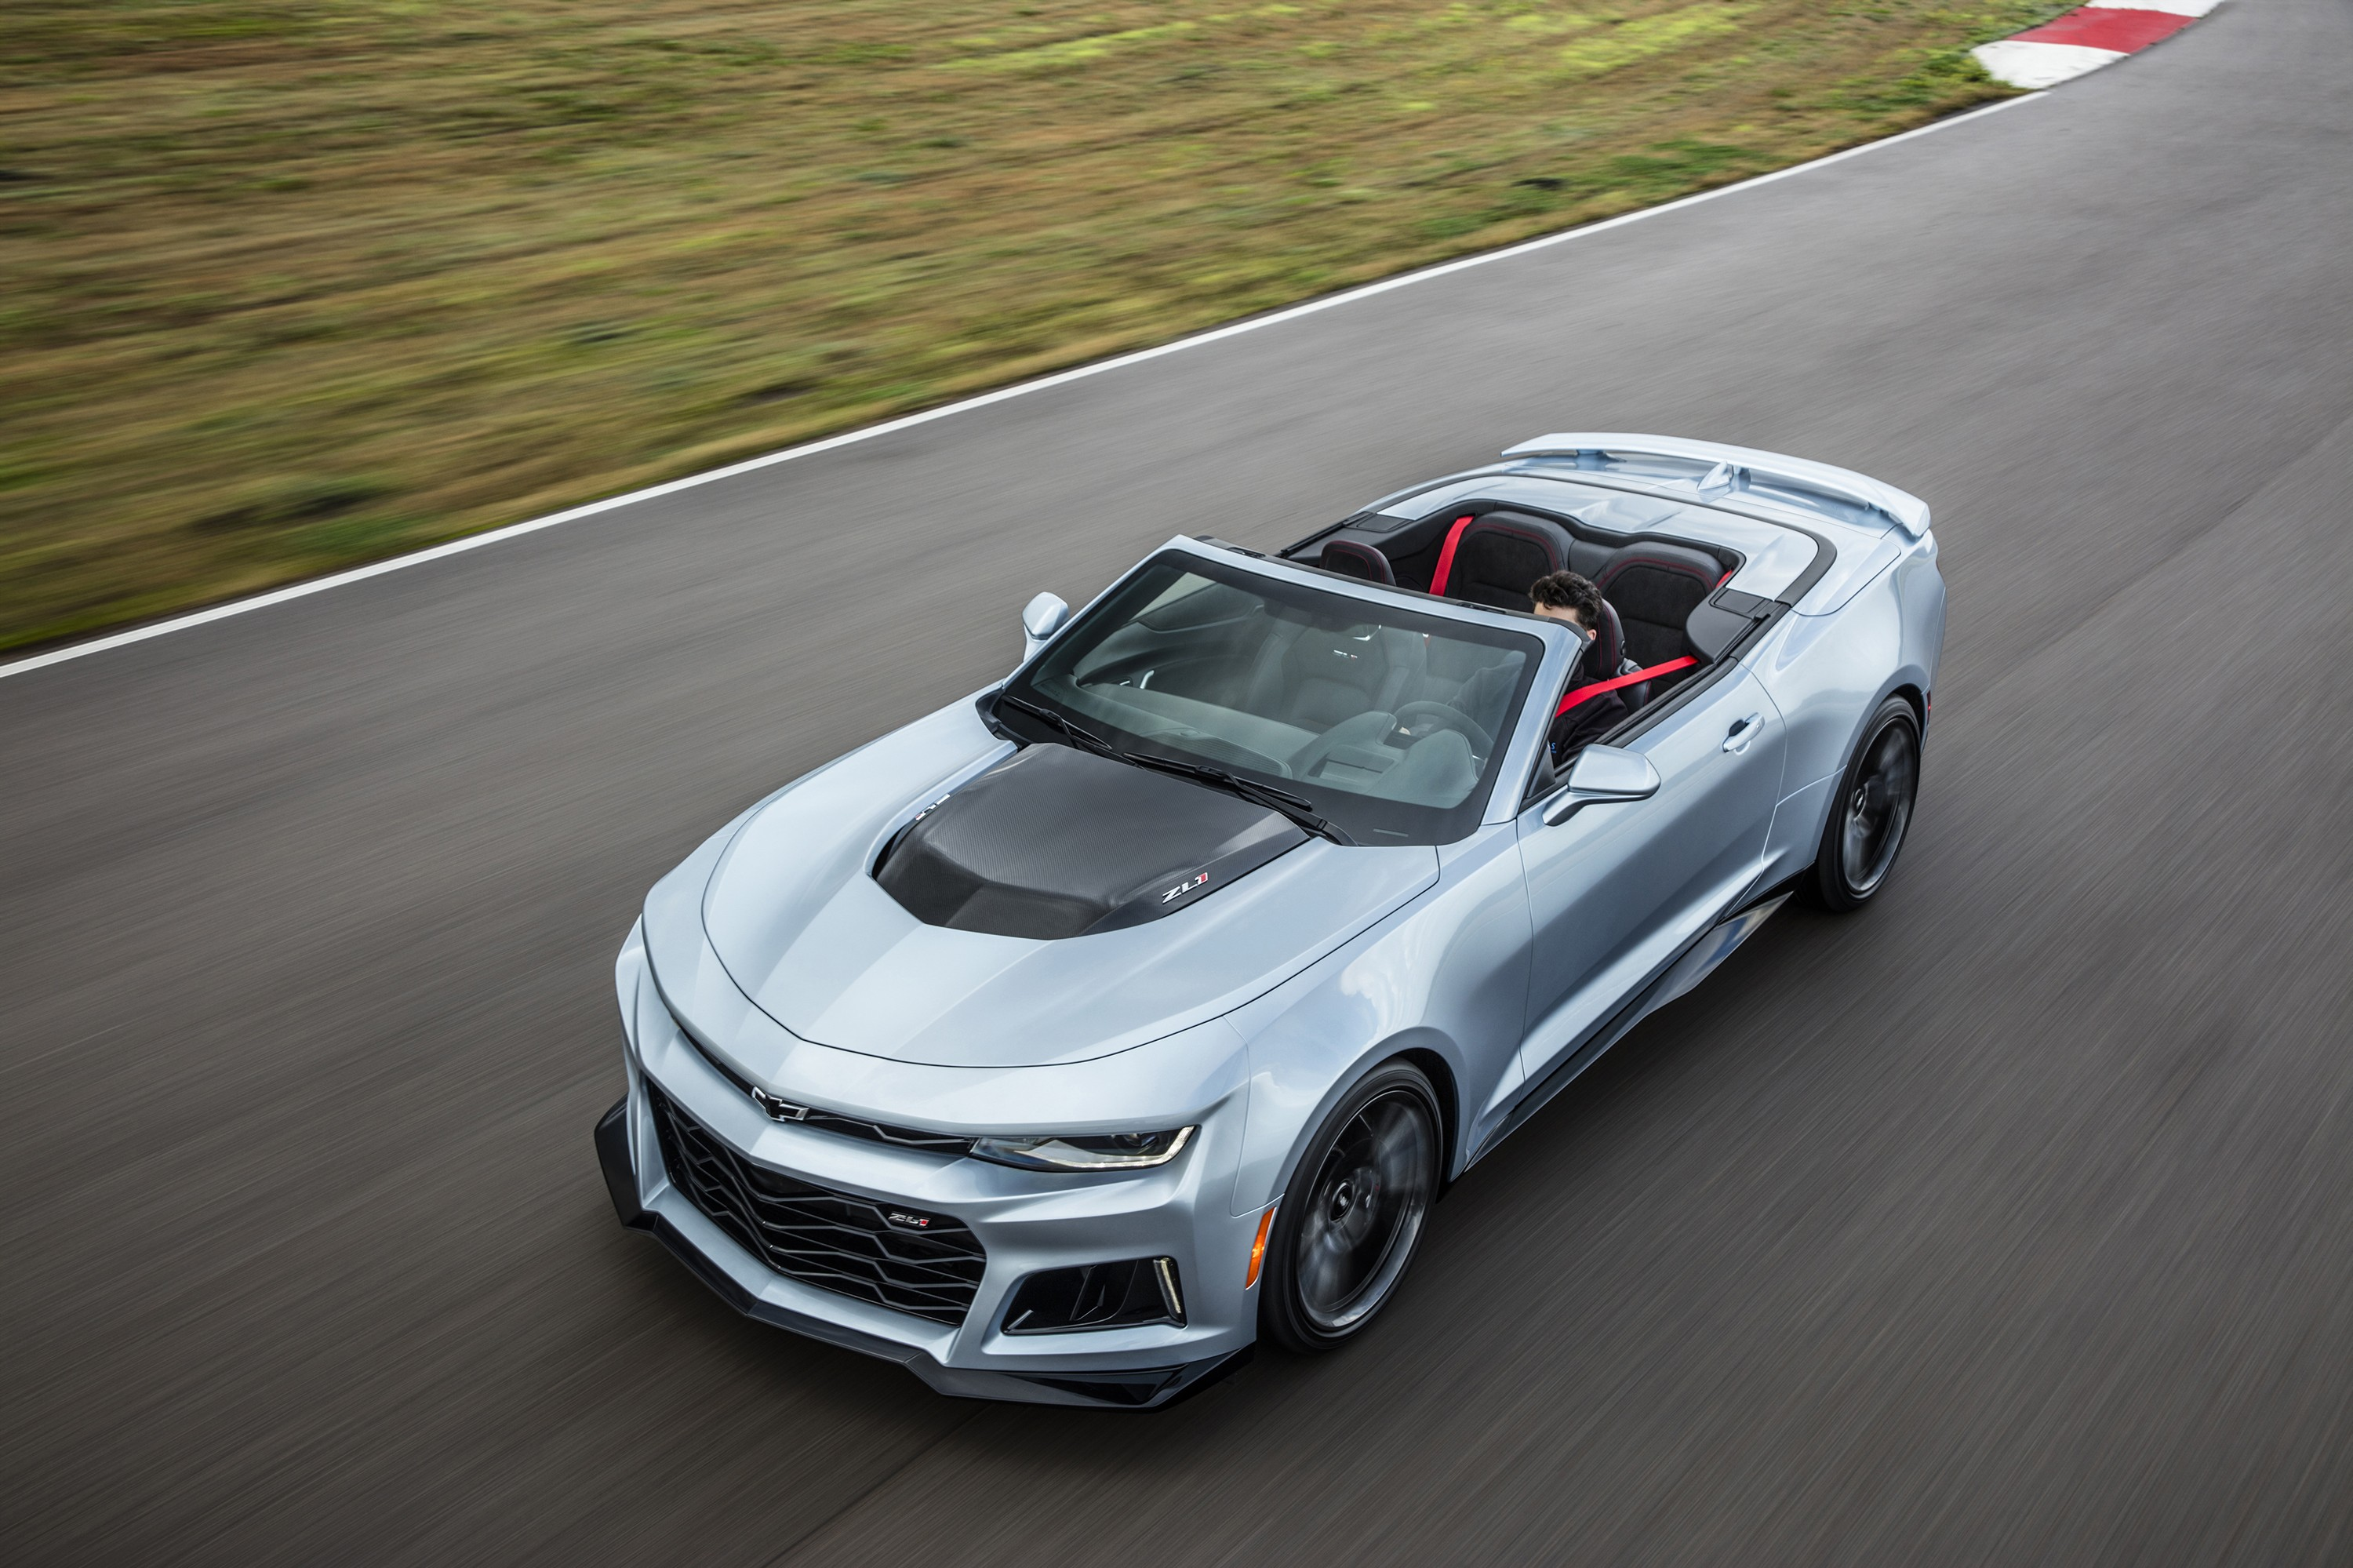 First Batch Of 2017 Chevrolet Camaro Zl1 Cars Will Be